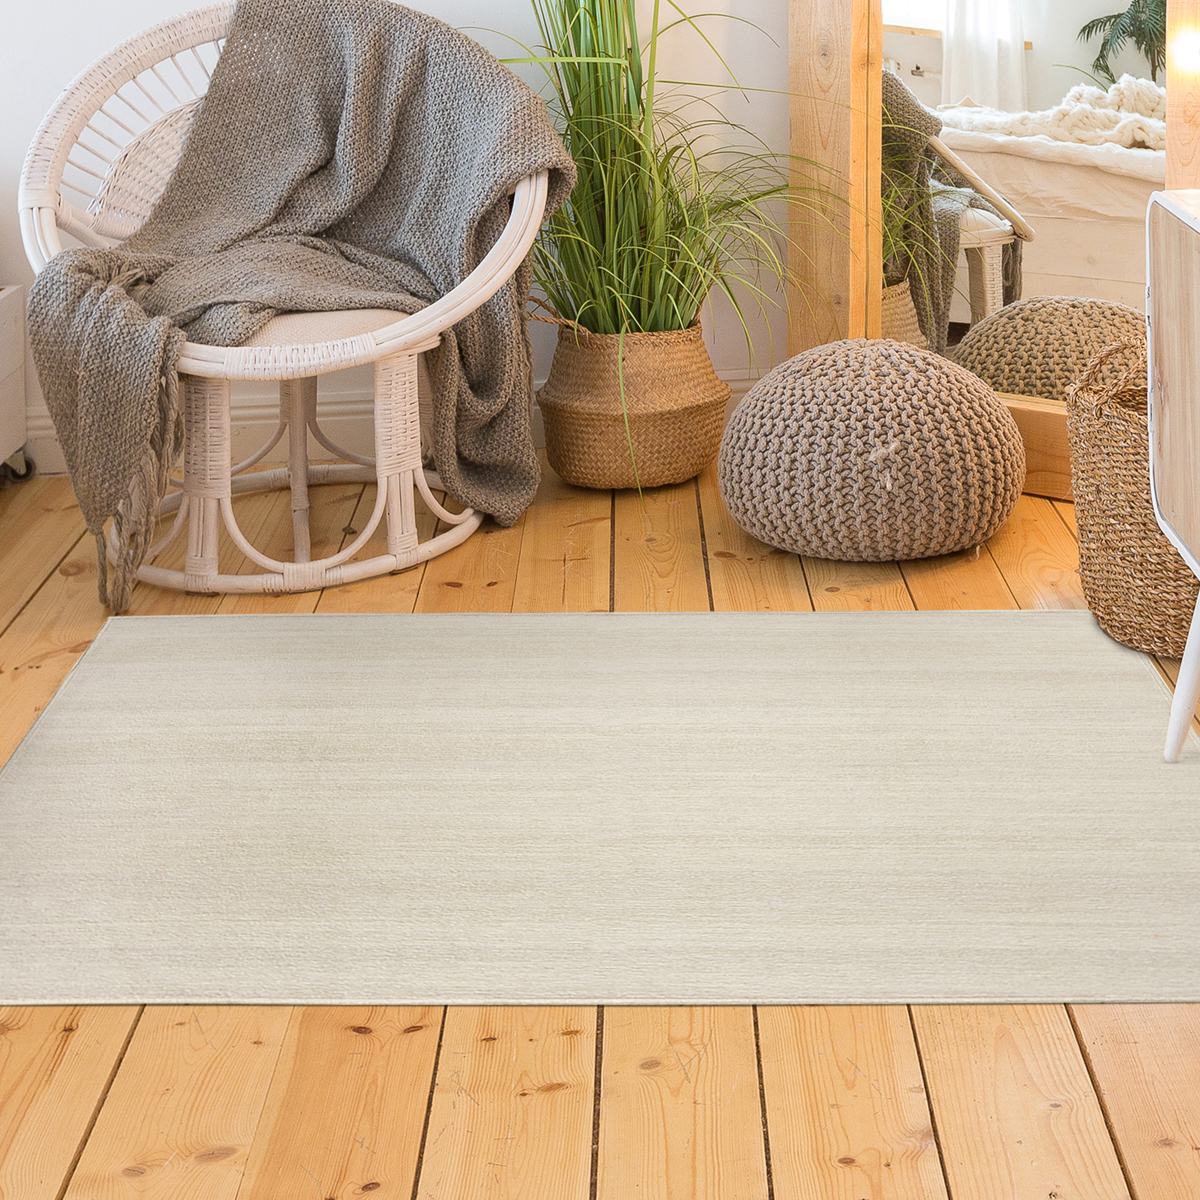 Ruggable Washable 3x5' Accent Rug-Solid Textured Cream | JOANN